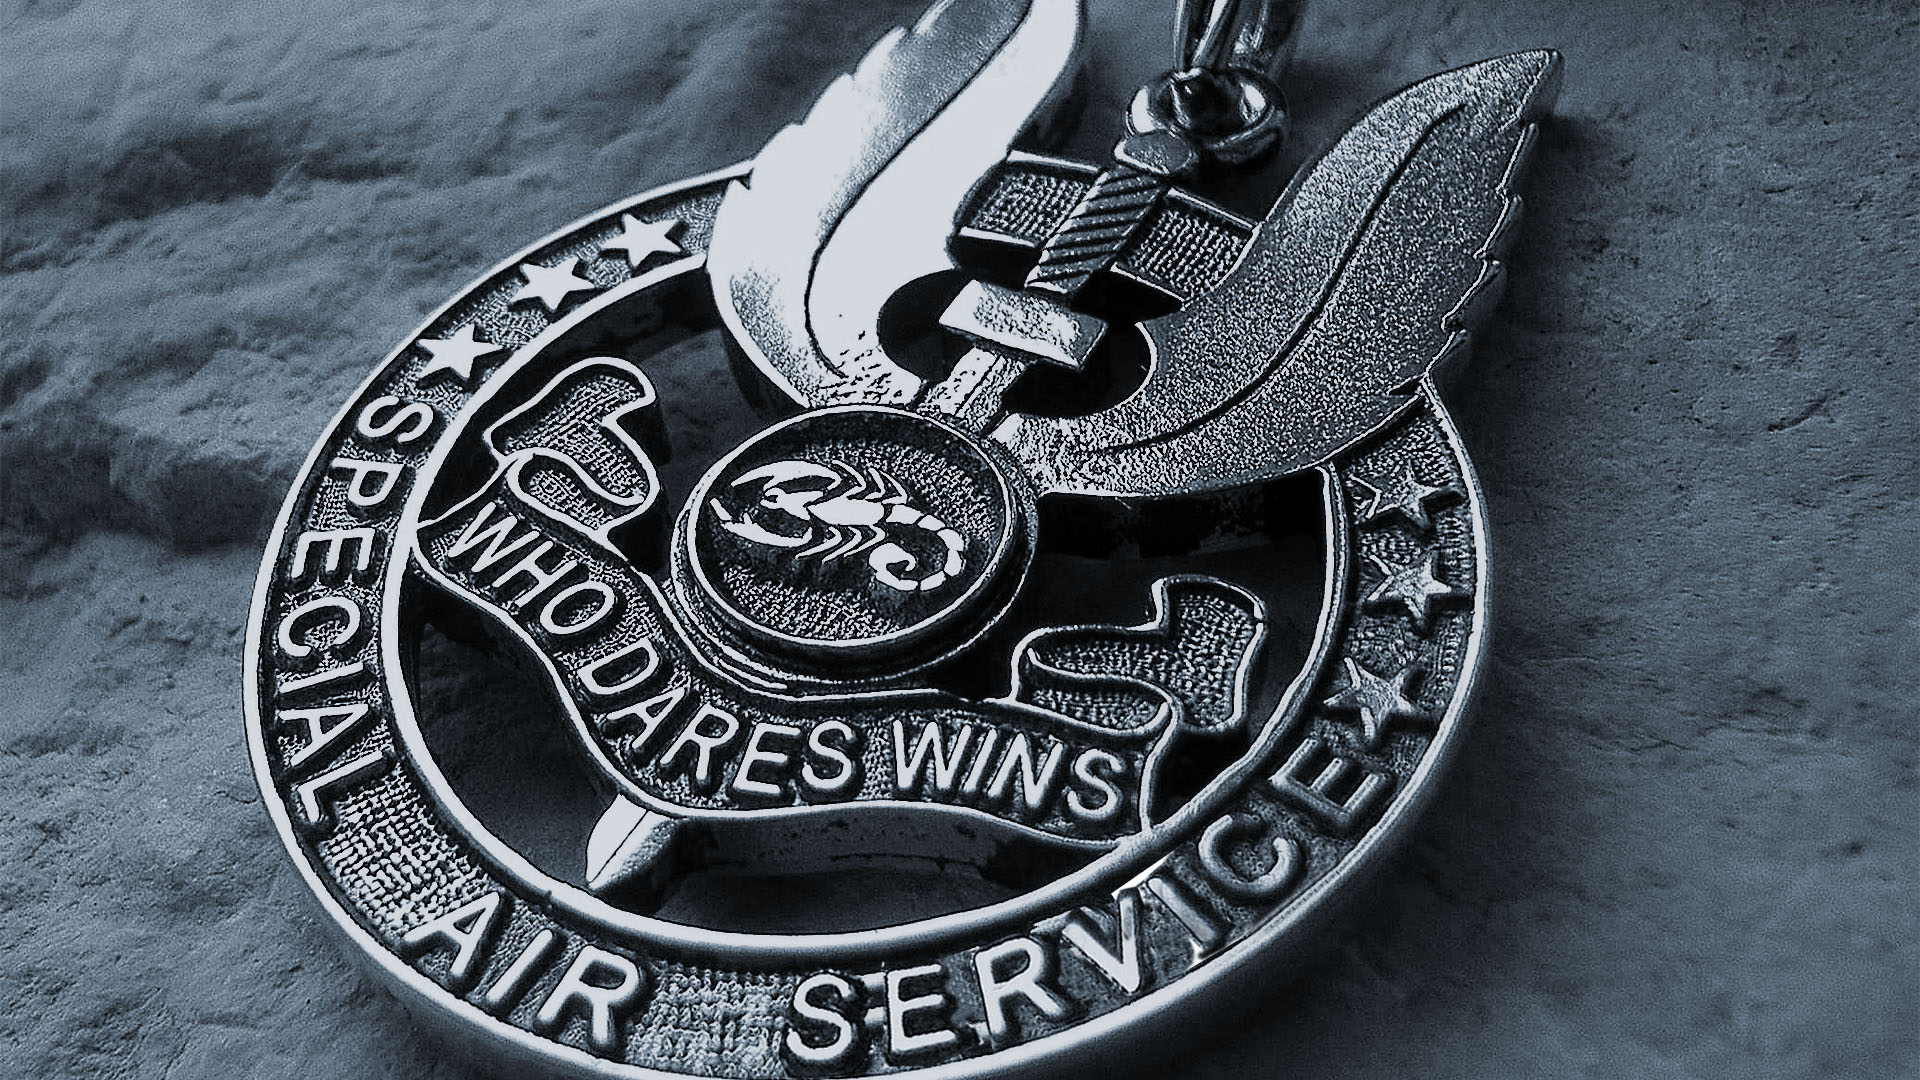 medal full hd wallpaper and background image | 1920x1080 | id:172021